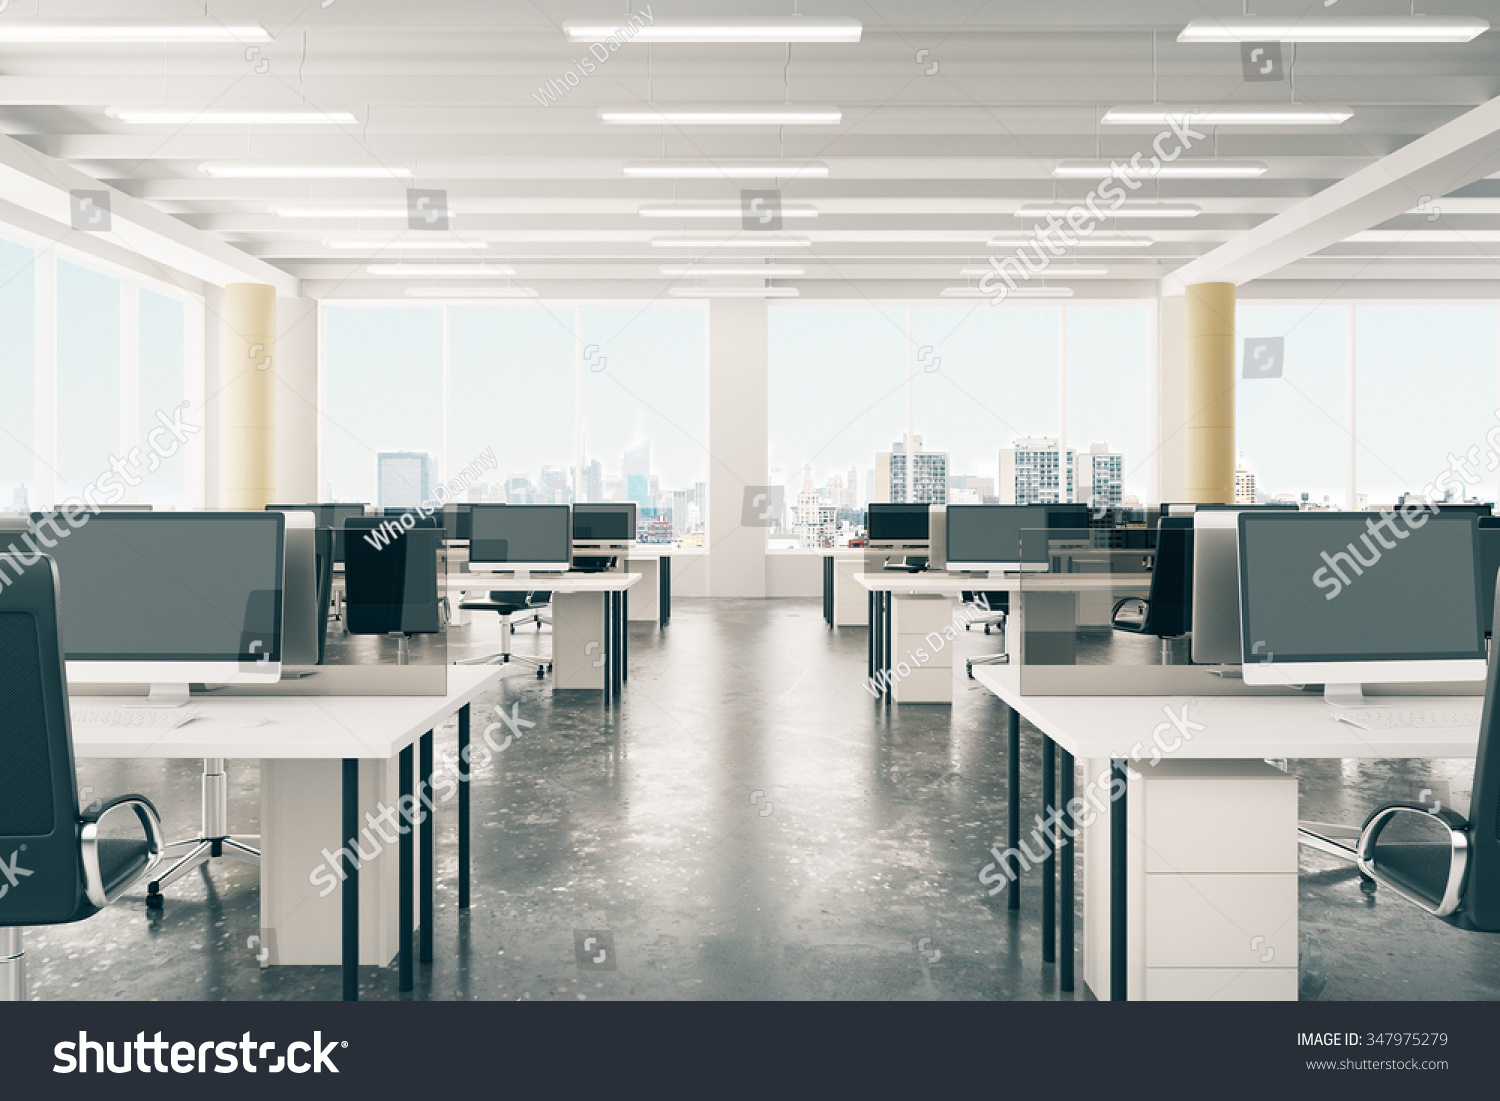 open space office loft style hangar stock photo 347975279 shutterstock. Black Bedroom Furniture Sets. Home Design Ideas